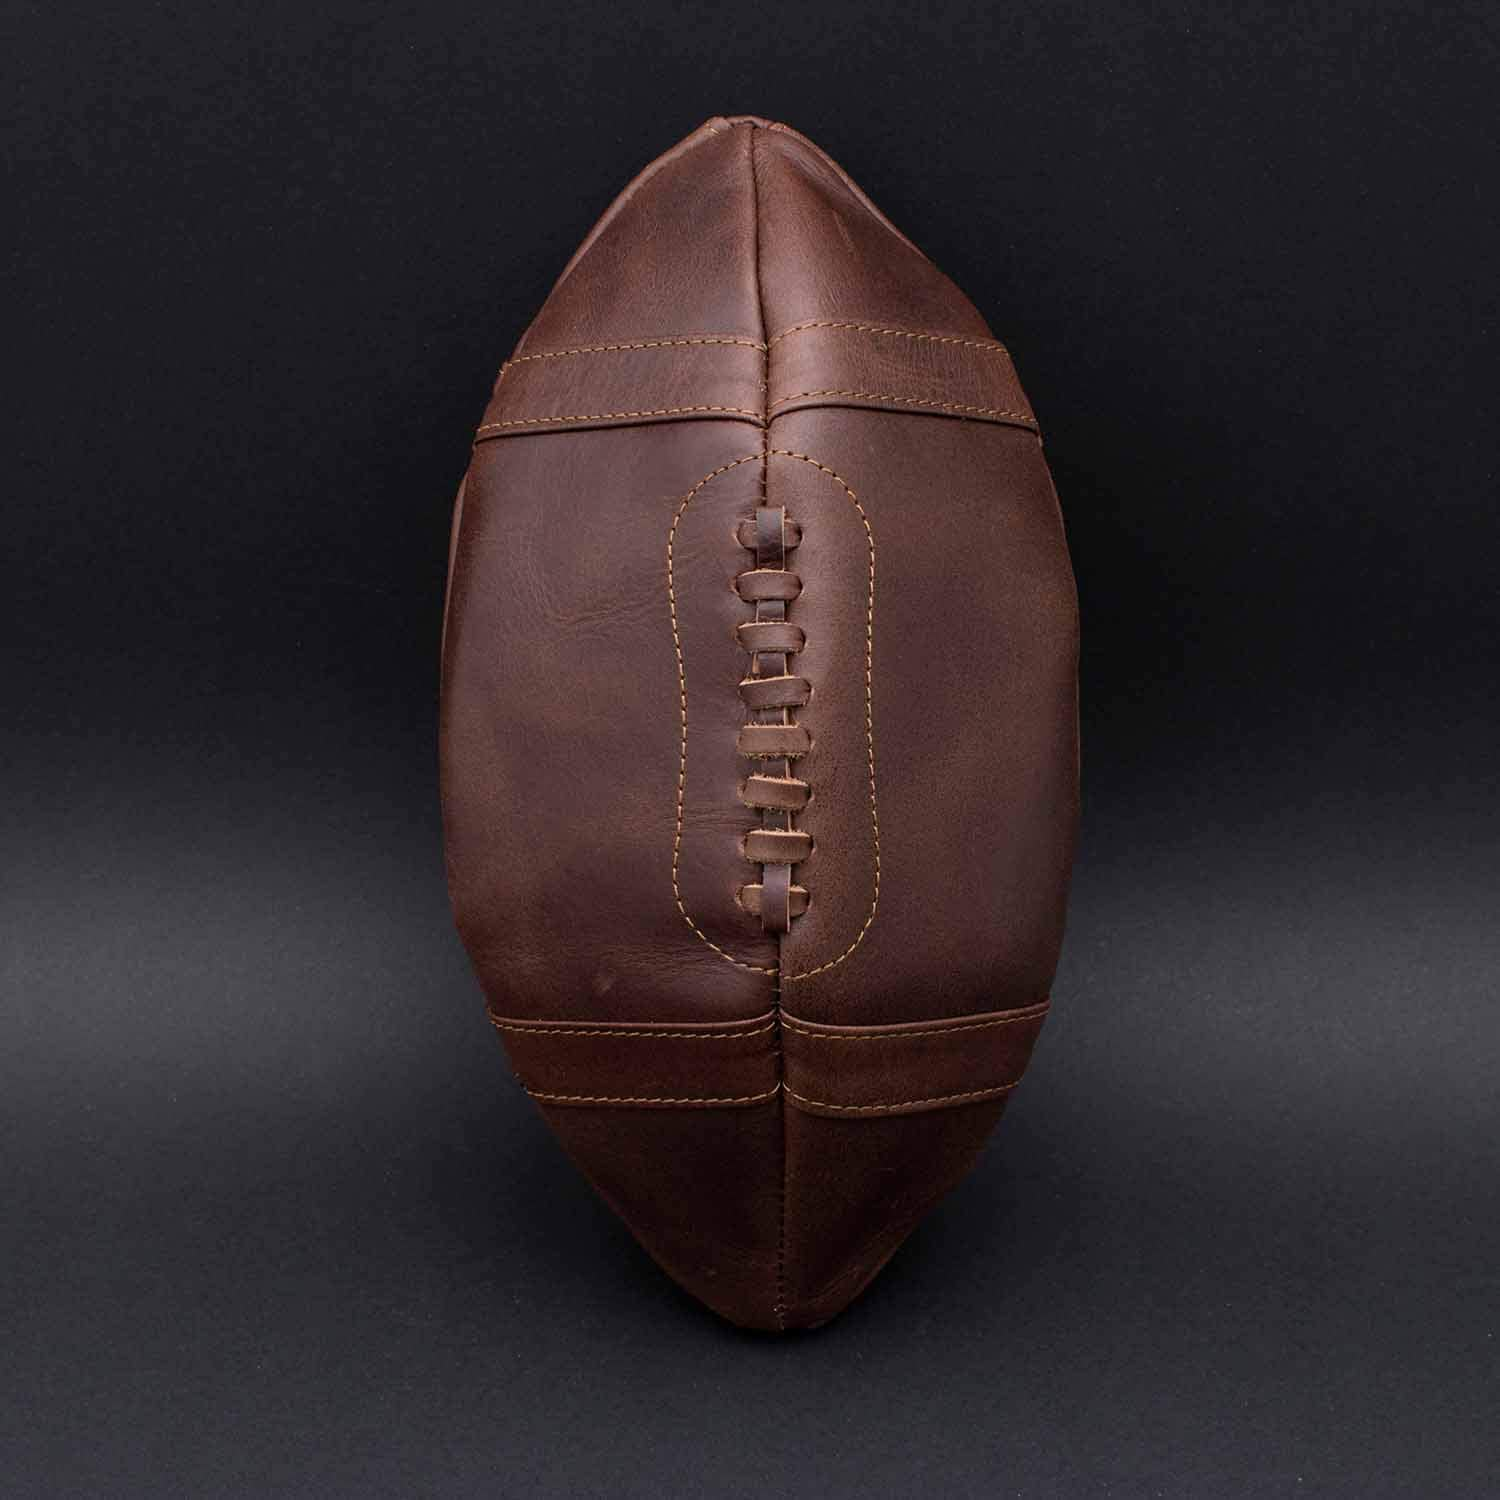 Thumbs Up ThumbsUp American Football-Neceser de Piel, Cuero ...